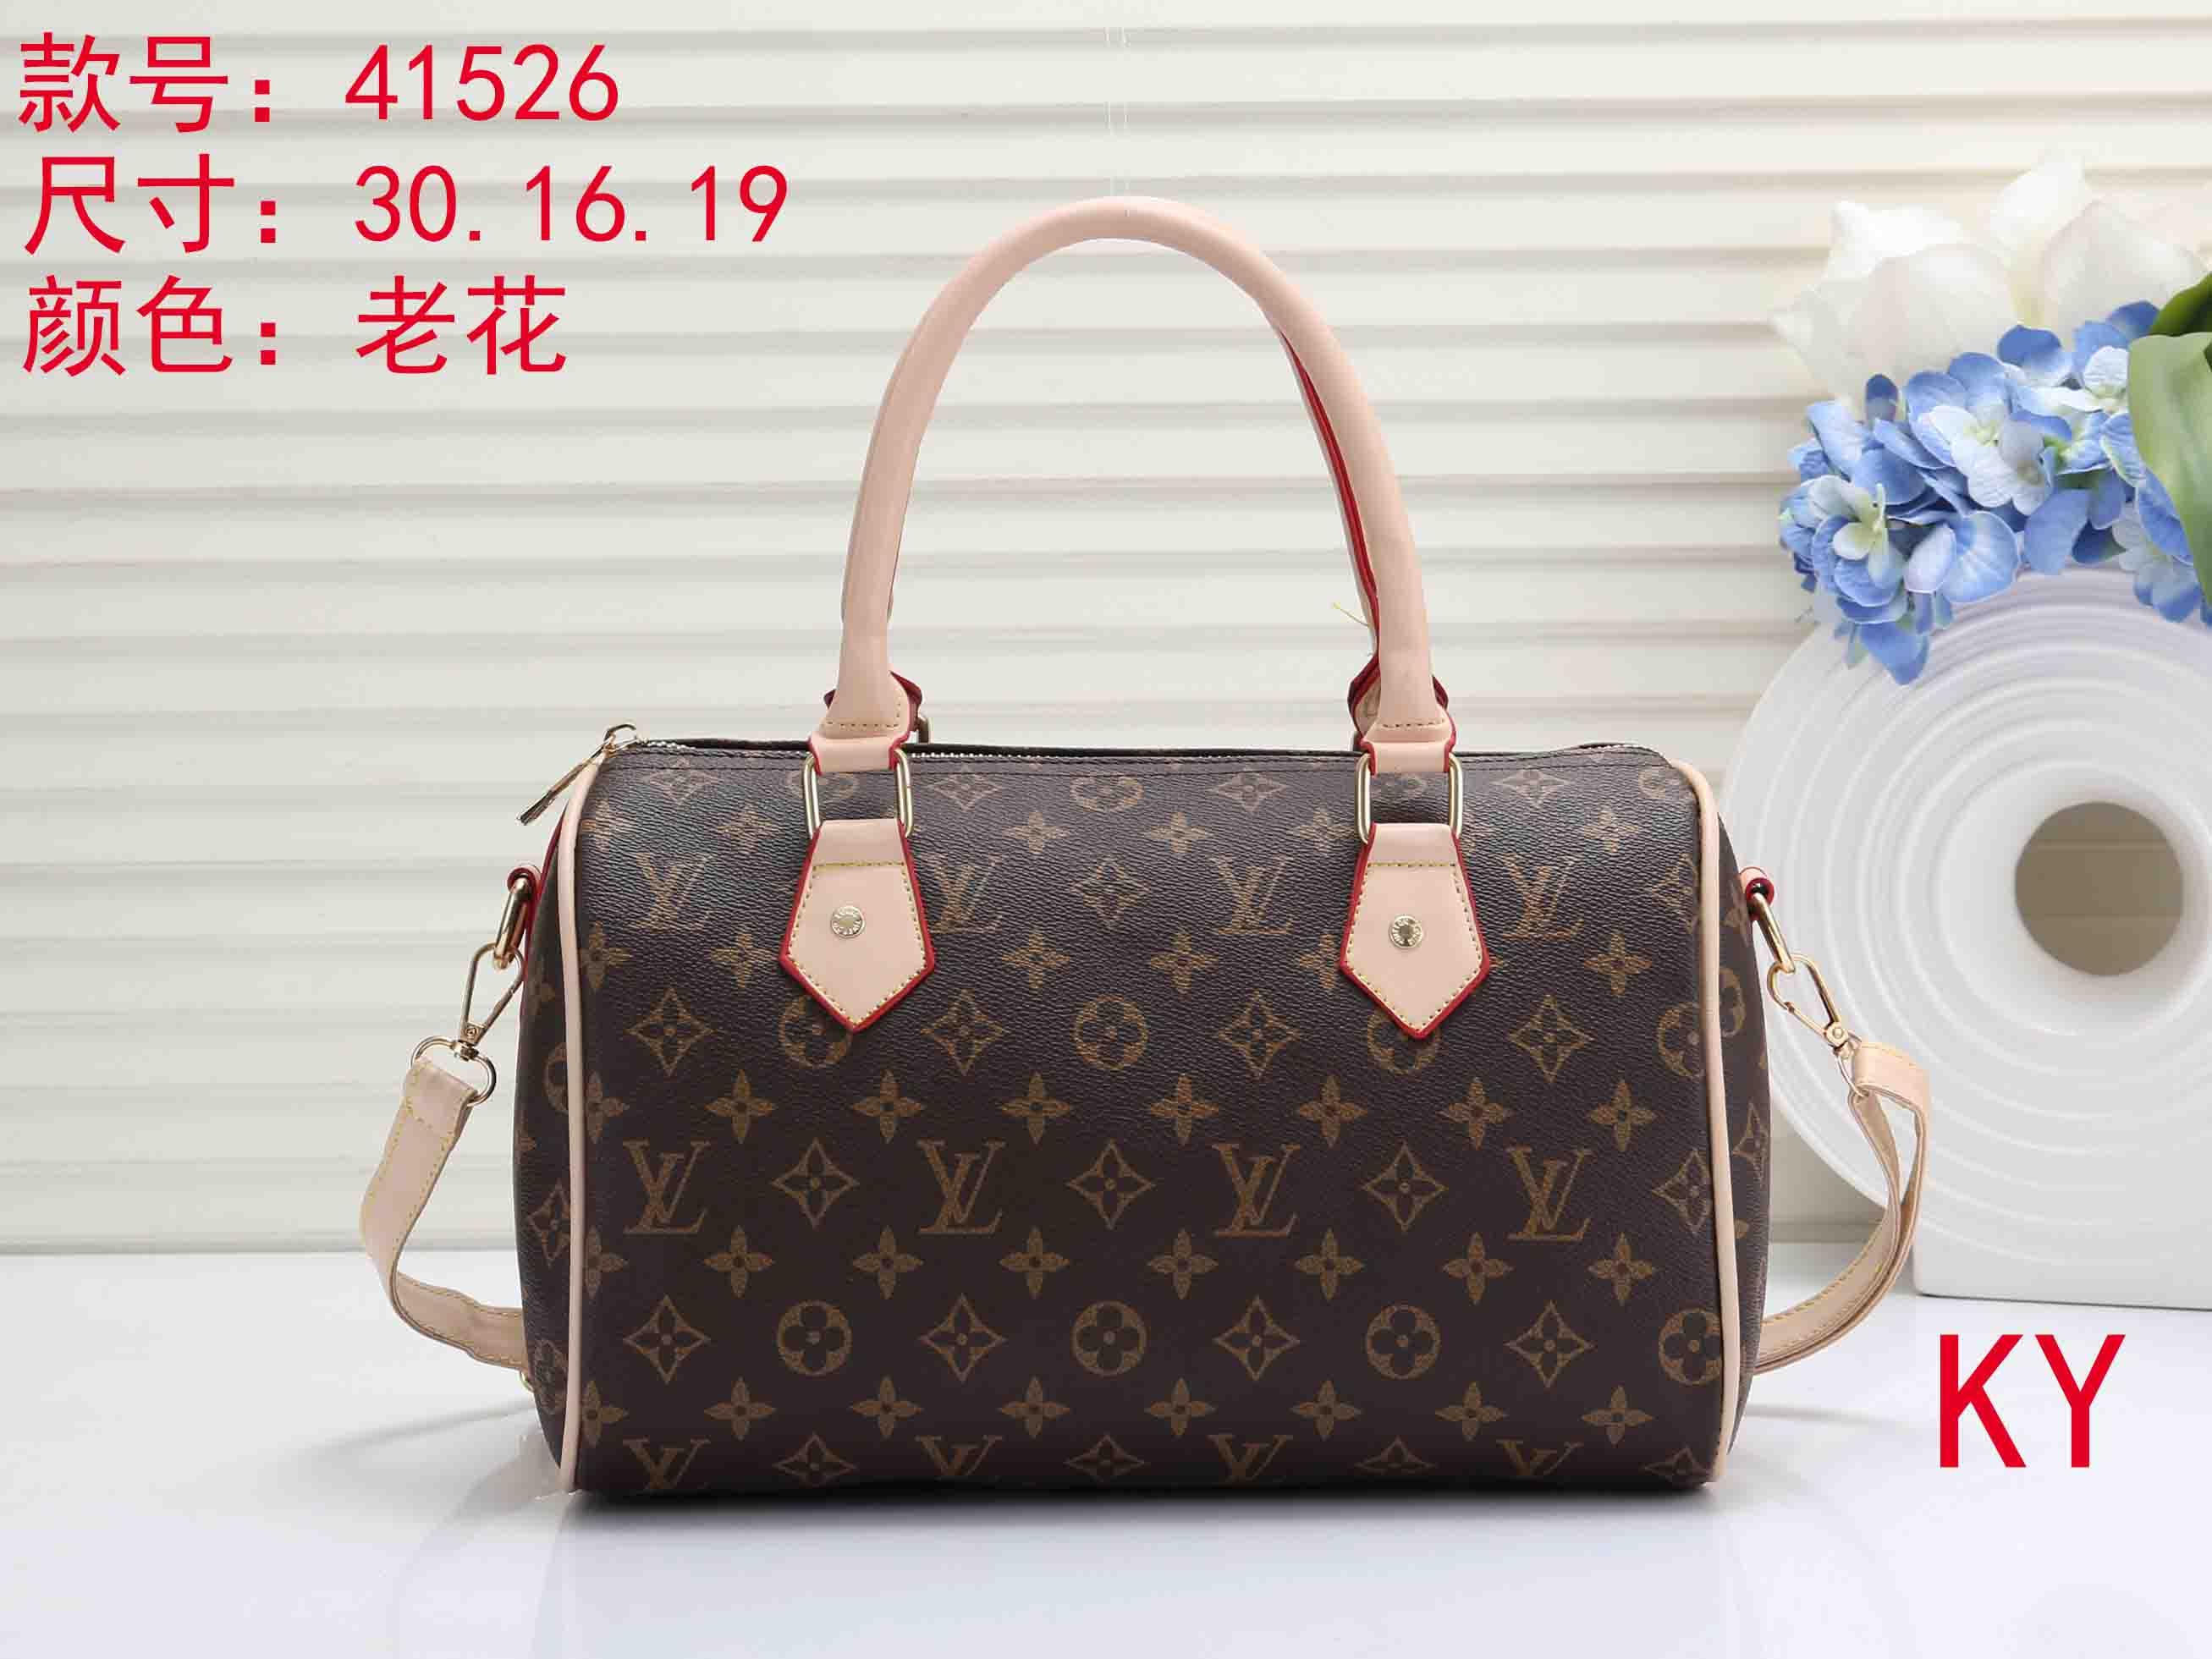 2019 Hot New European Designers For Women S Classic Style Of Large Capacity Bags  Handbag Simple Multi Purpose Shoulder Bag Leather Backpacks Shoulder Bags  ... 655f7e482a496